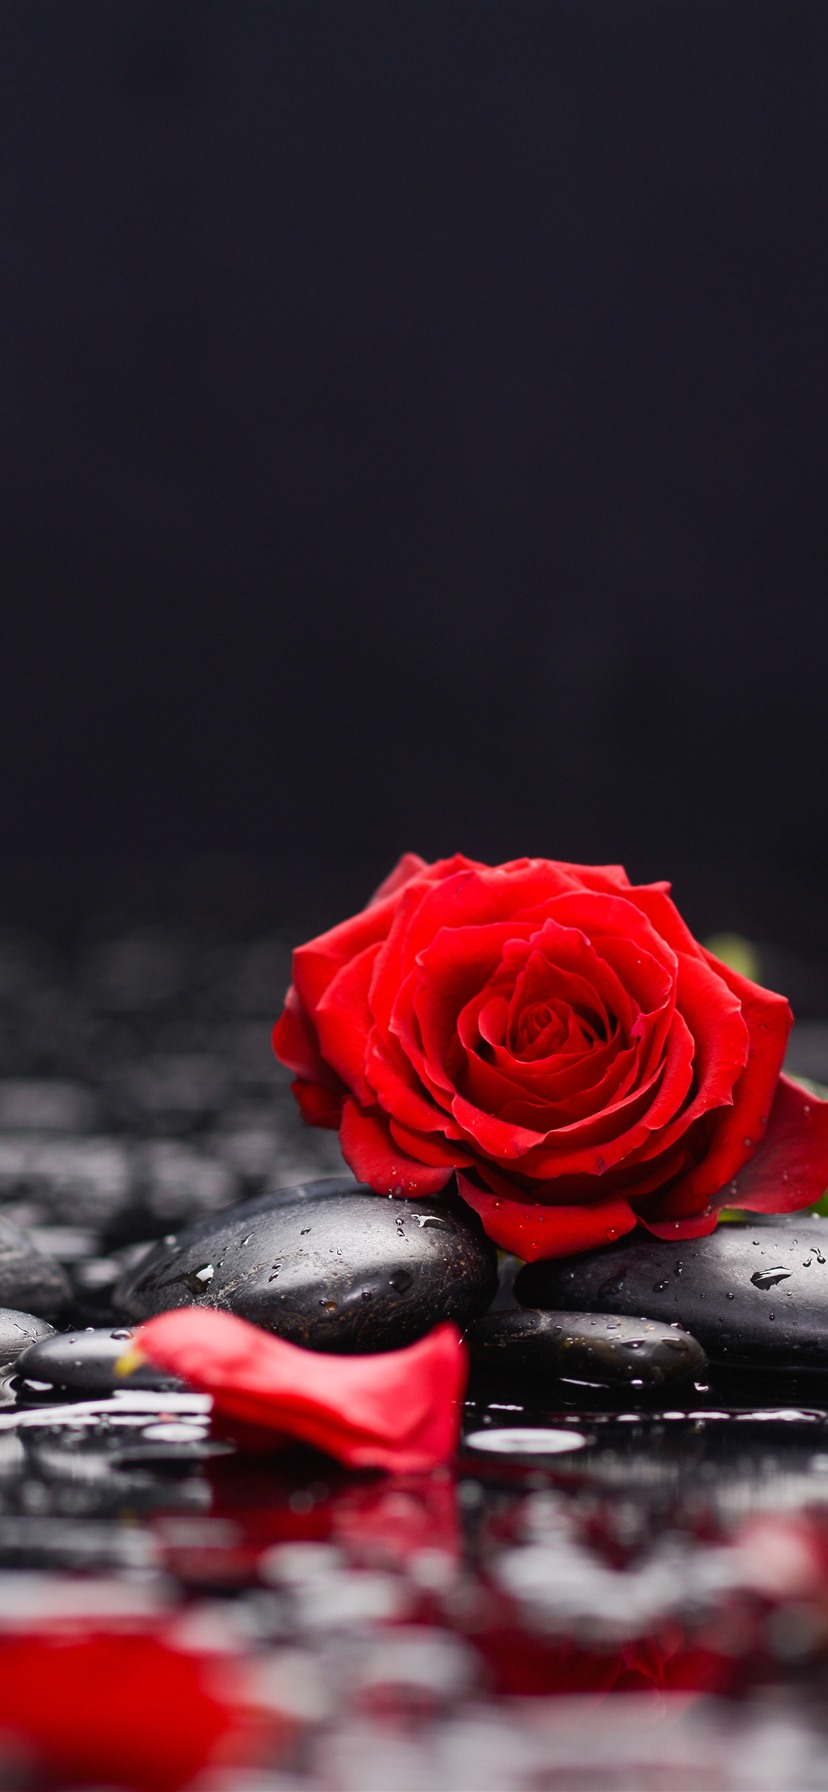 Red Rose Wallpaper For Iphone 828x1792 Wallpaper Teahub Io